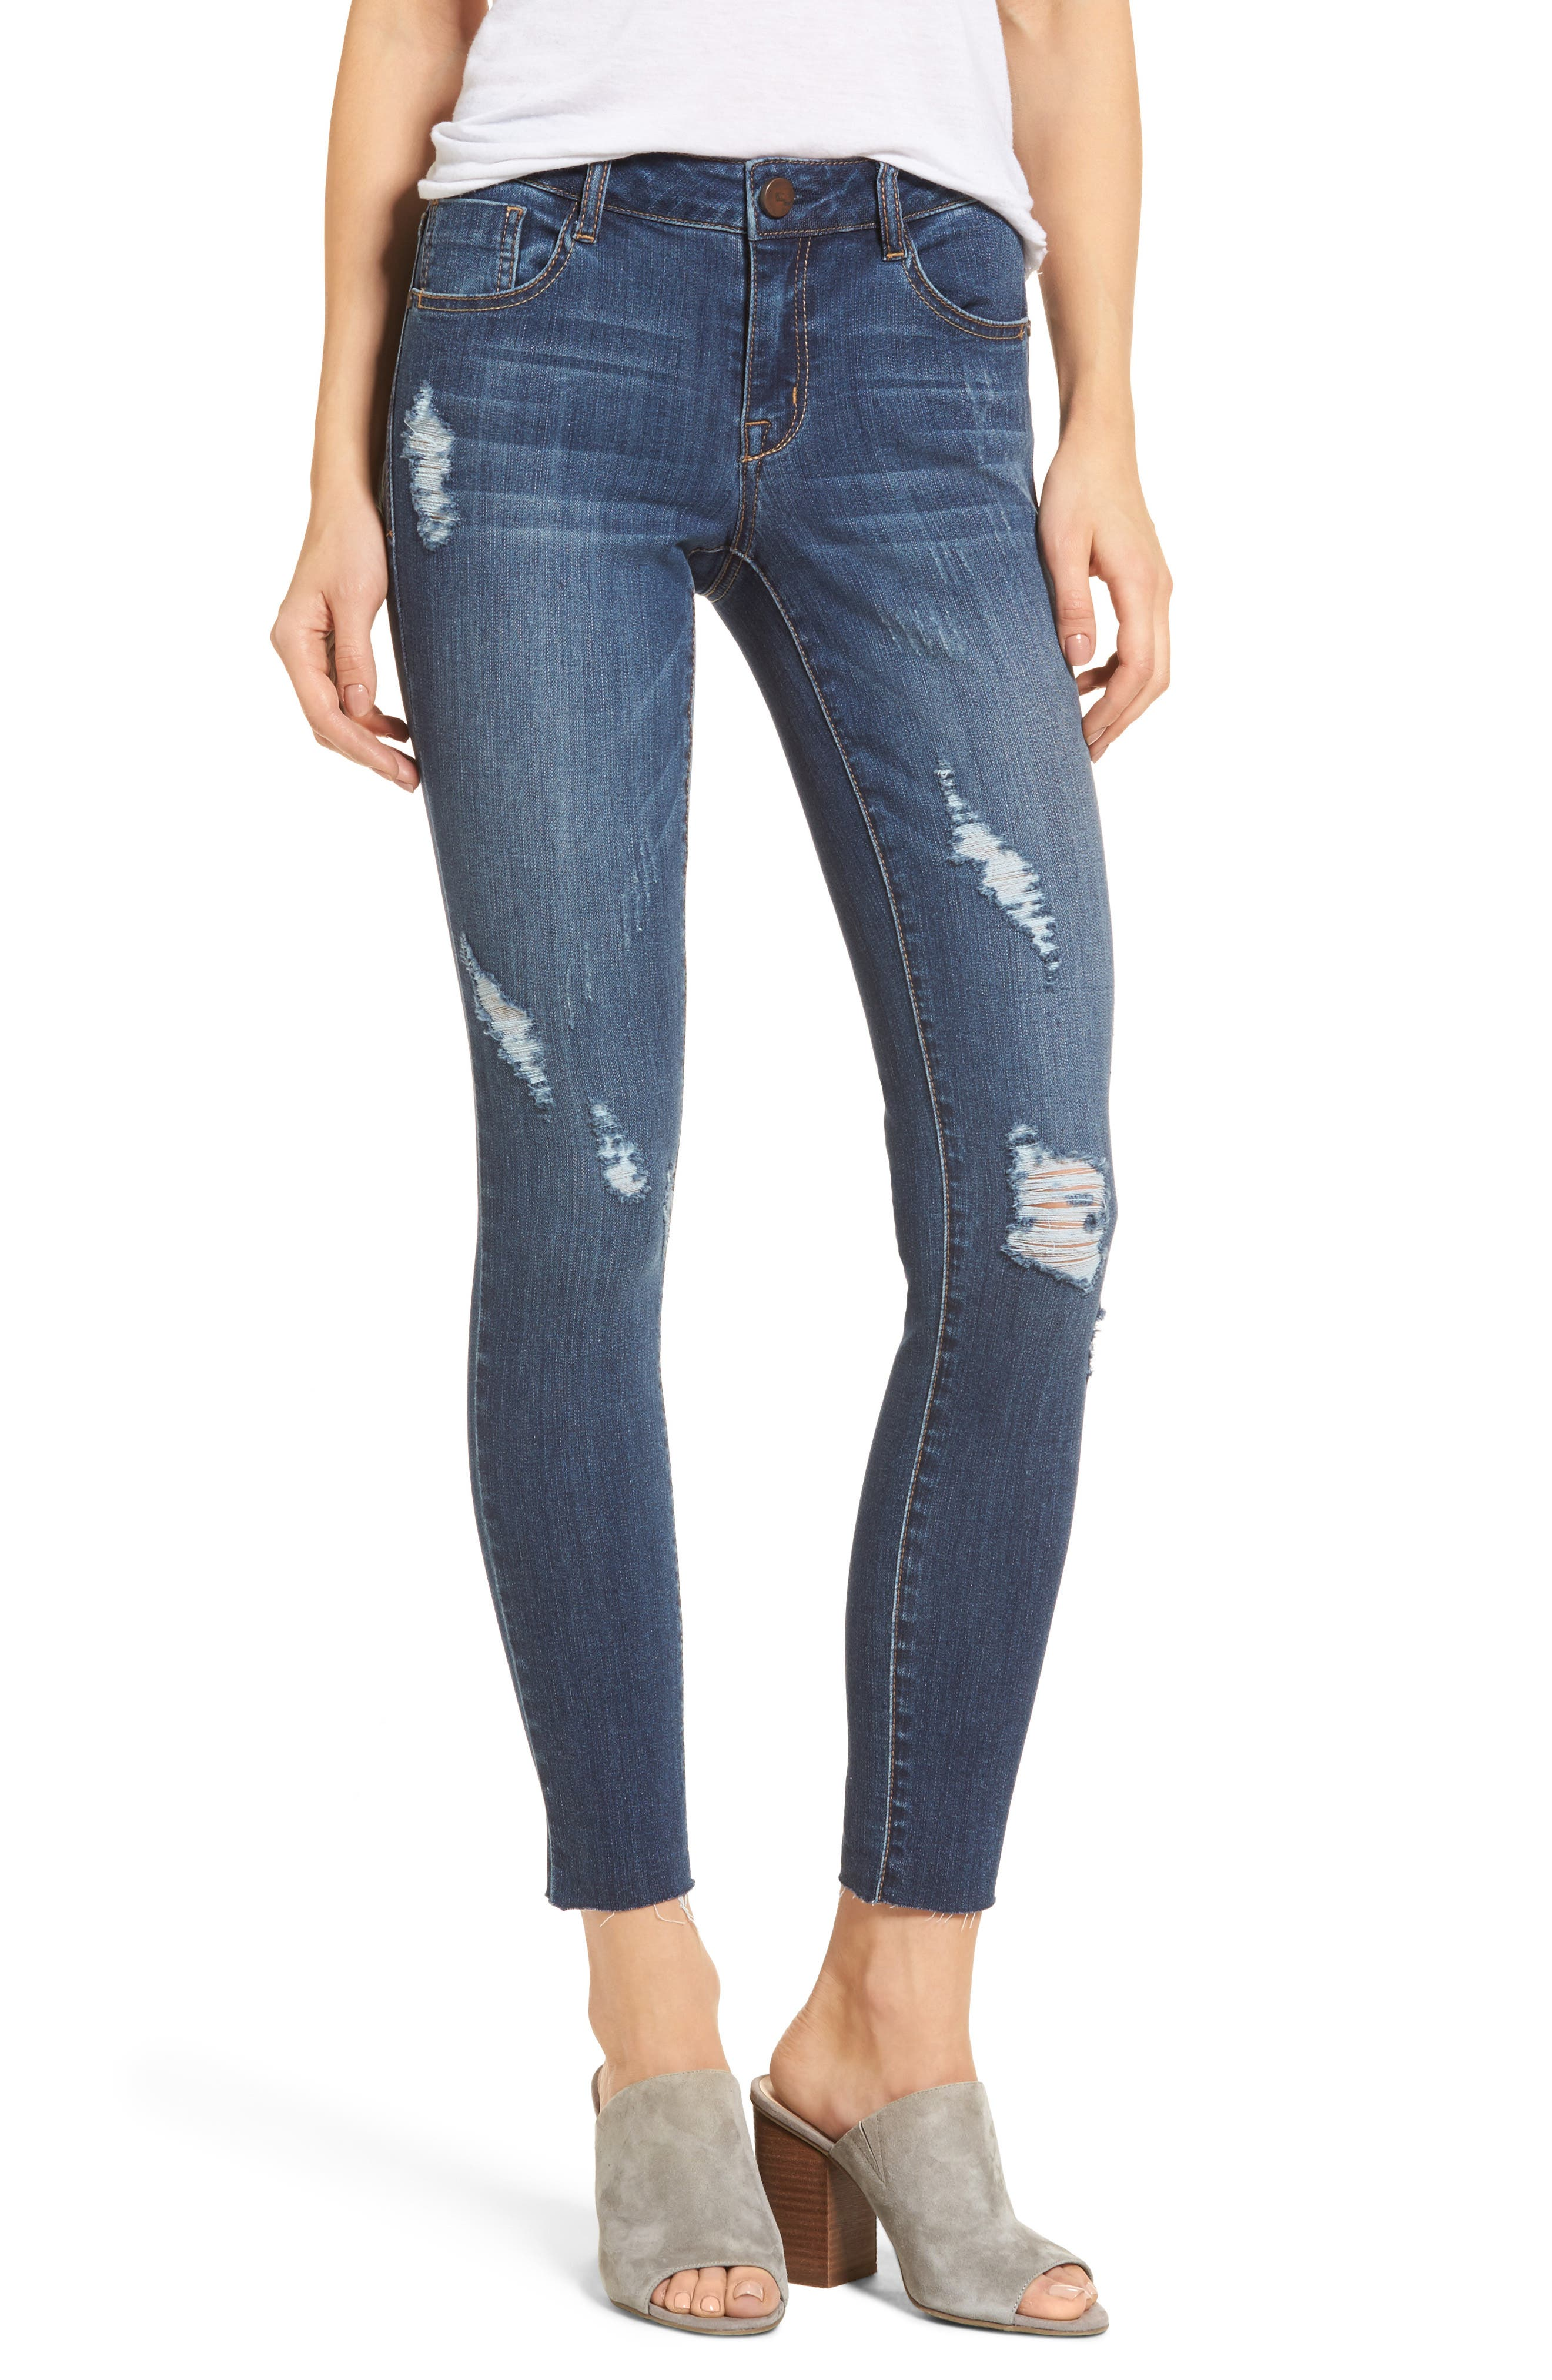 Decon Distressed Skinny Jeans,                         Main,                         color, Wall Flowers Med Wash